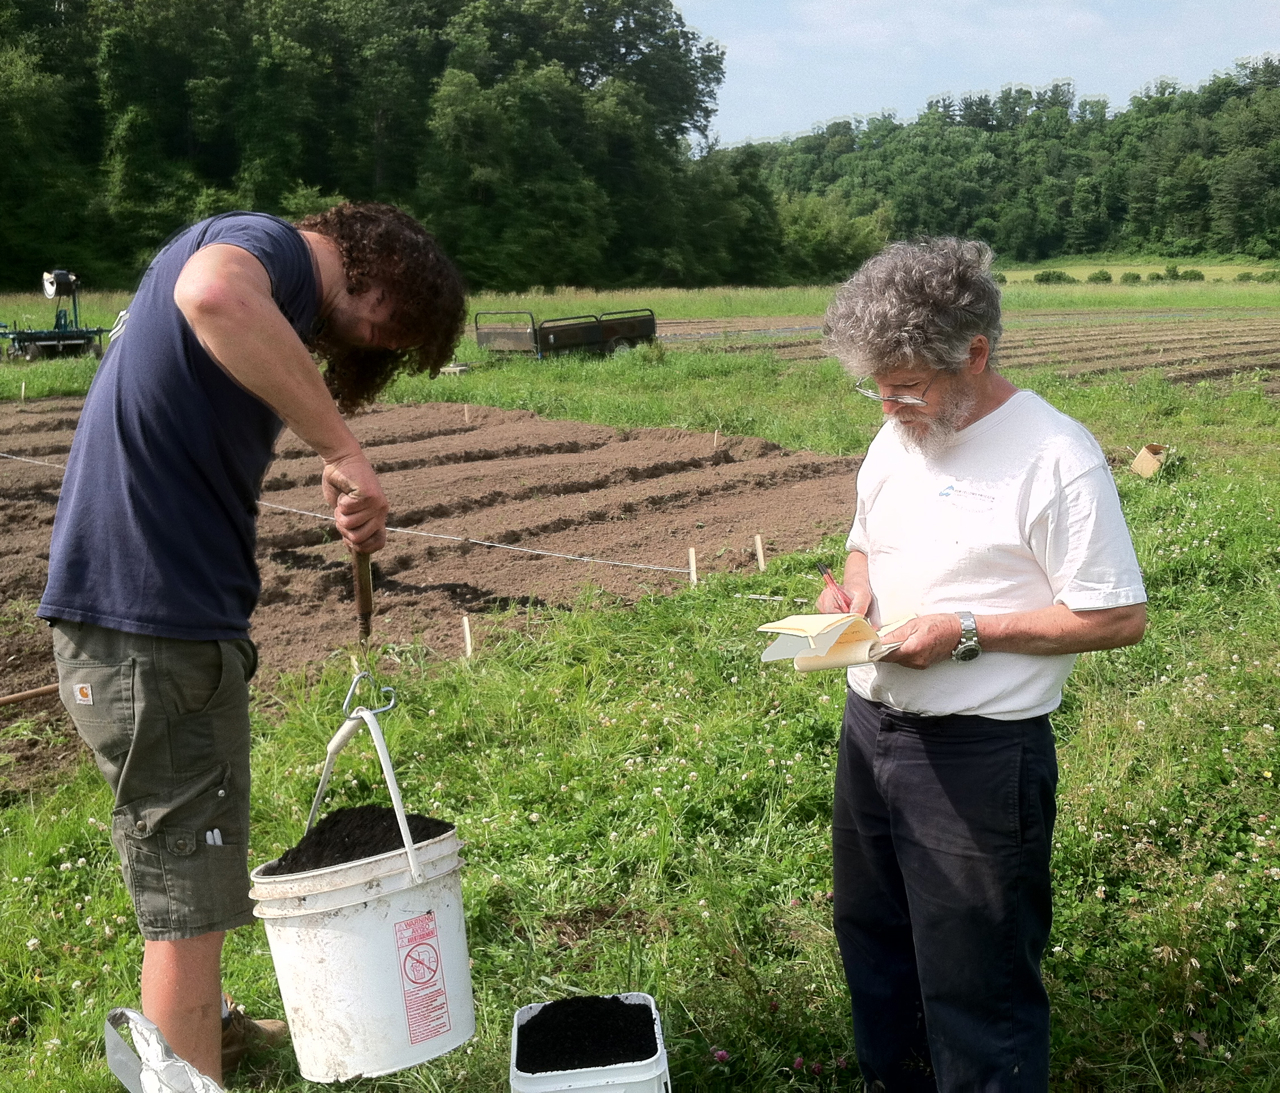 Dr. Tom Goreau and Ben Twombley measuring Bio Char to add to our test plot